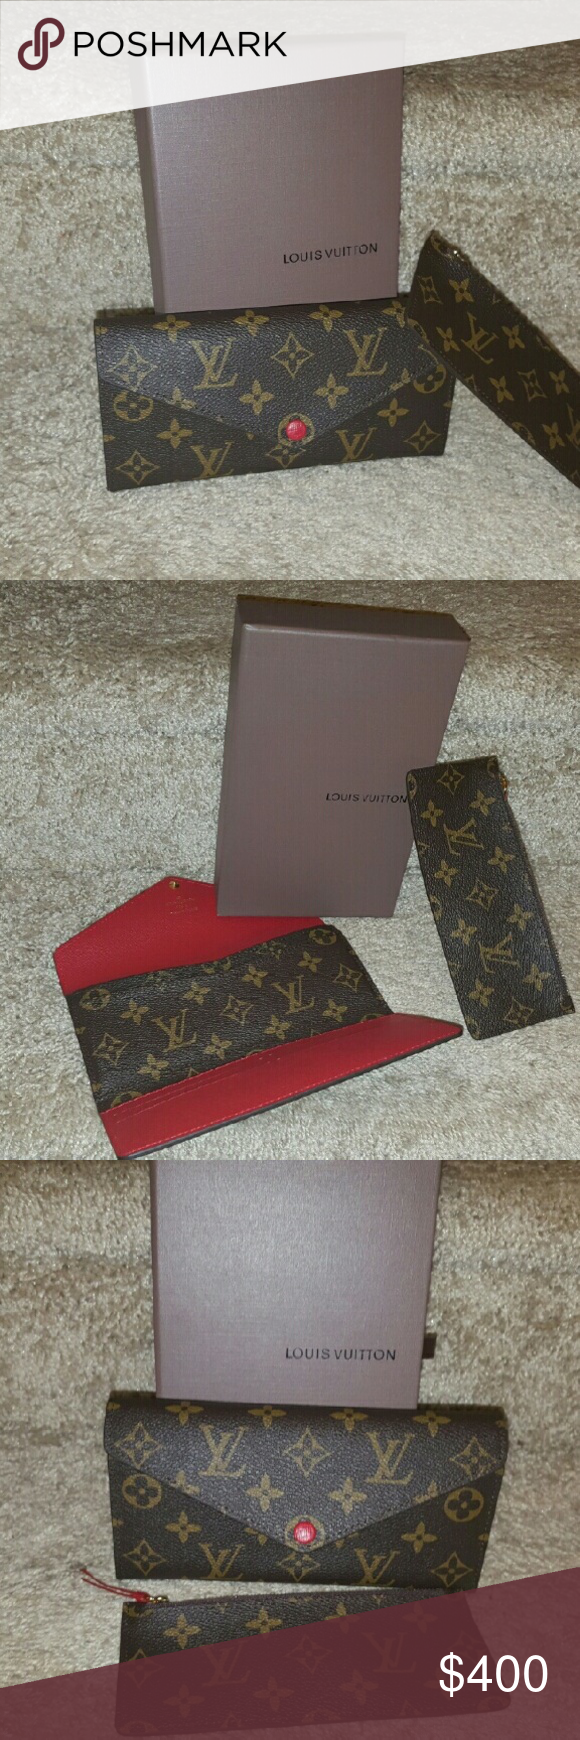 Louis vuitton jospehine wallet Excellent conditon Josephine wallet  comes with original box and dust bag well taken care of smoke free home comes with certificate of authentication serious inquiries please Louis Vuitton Bags Wallets